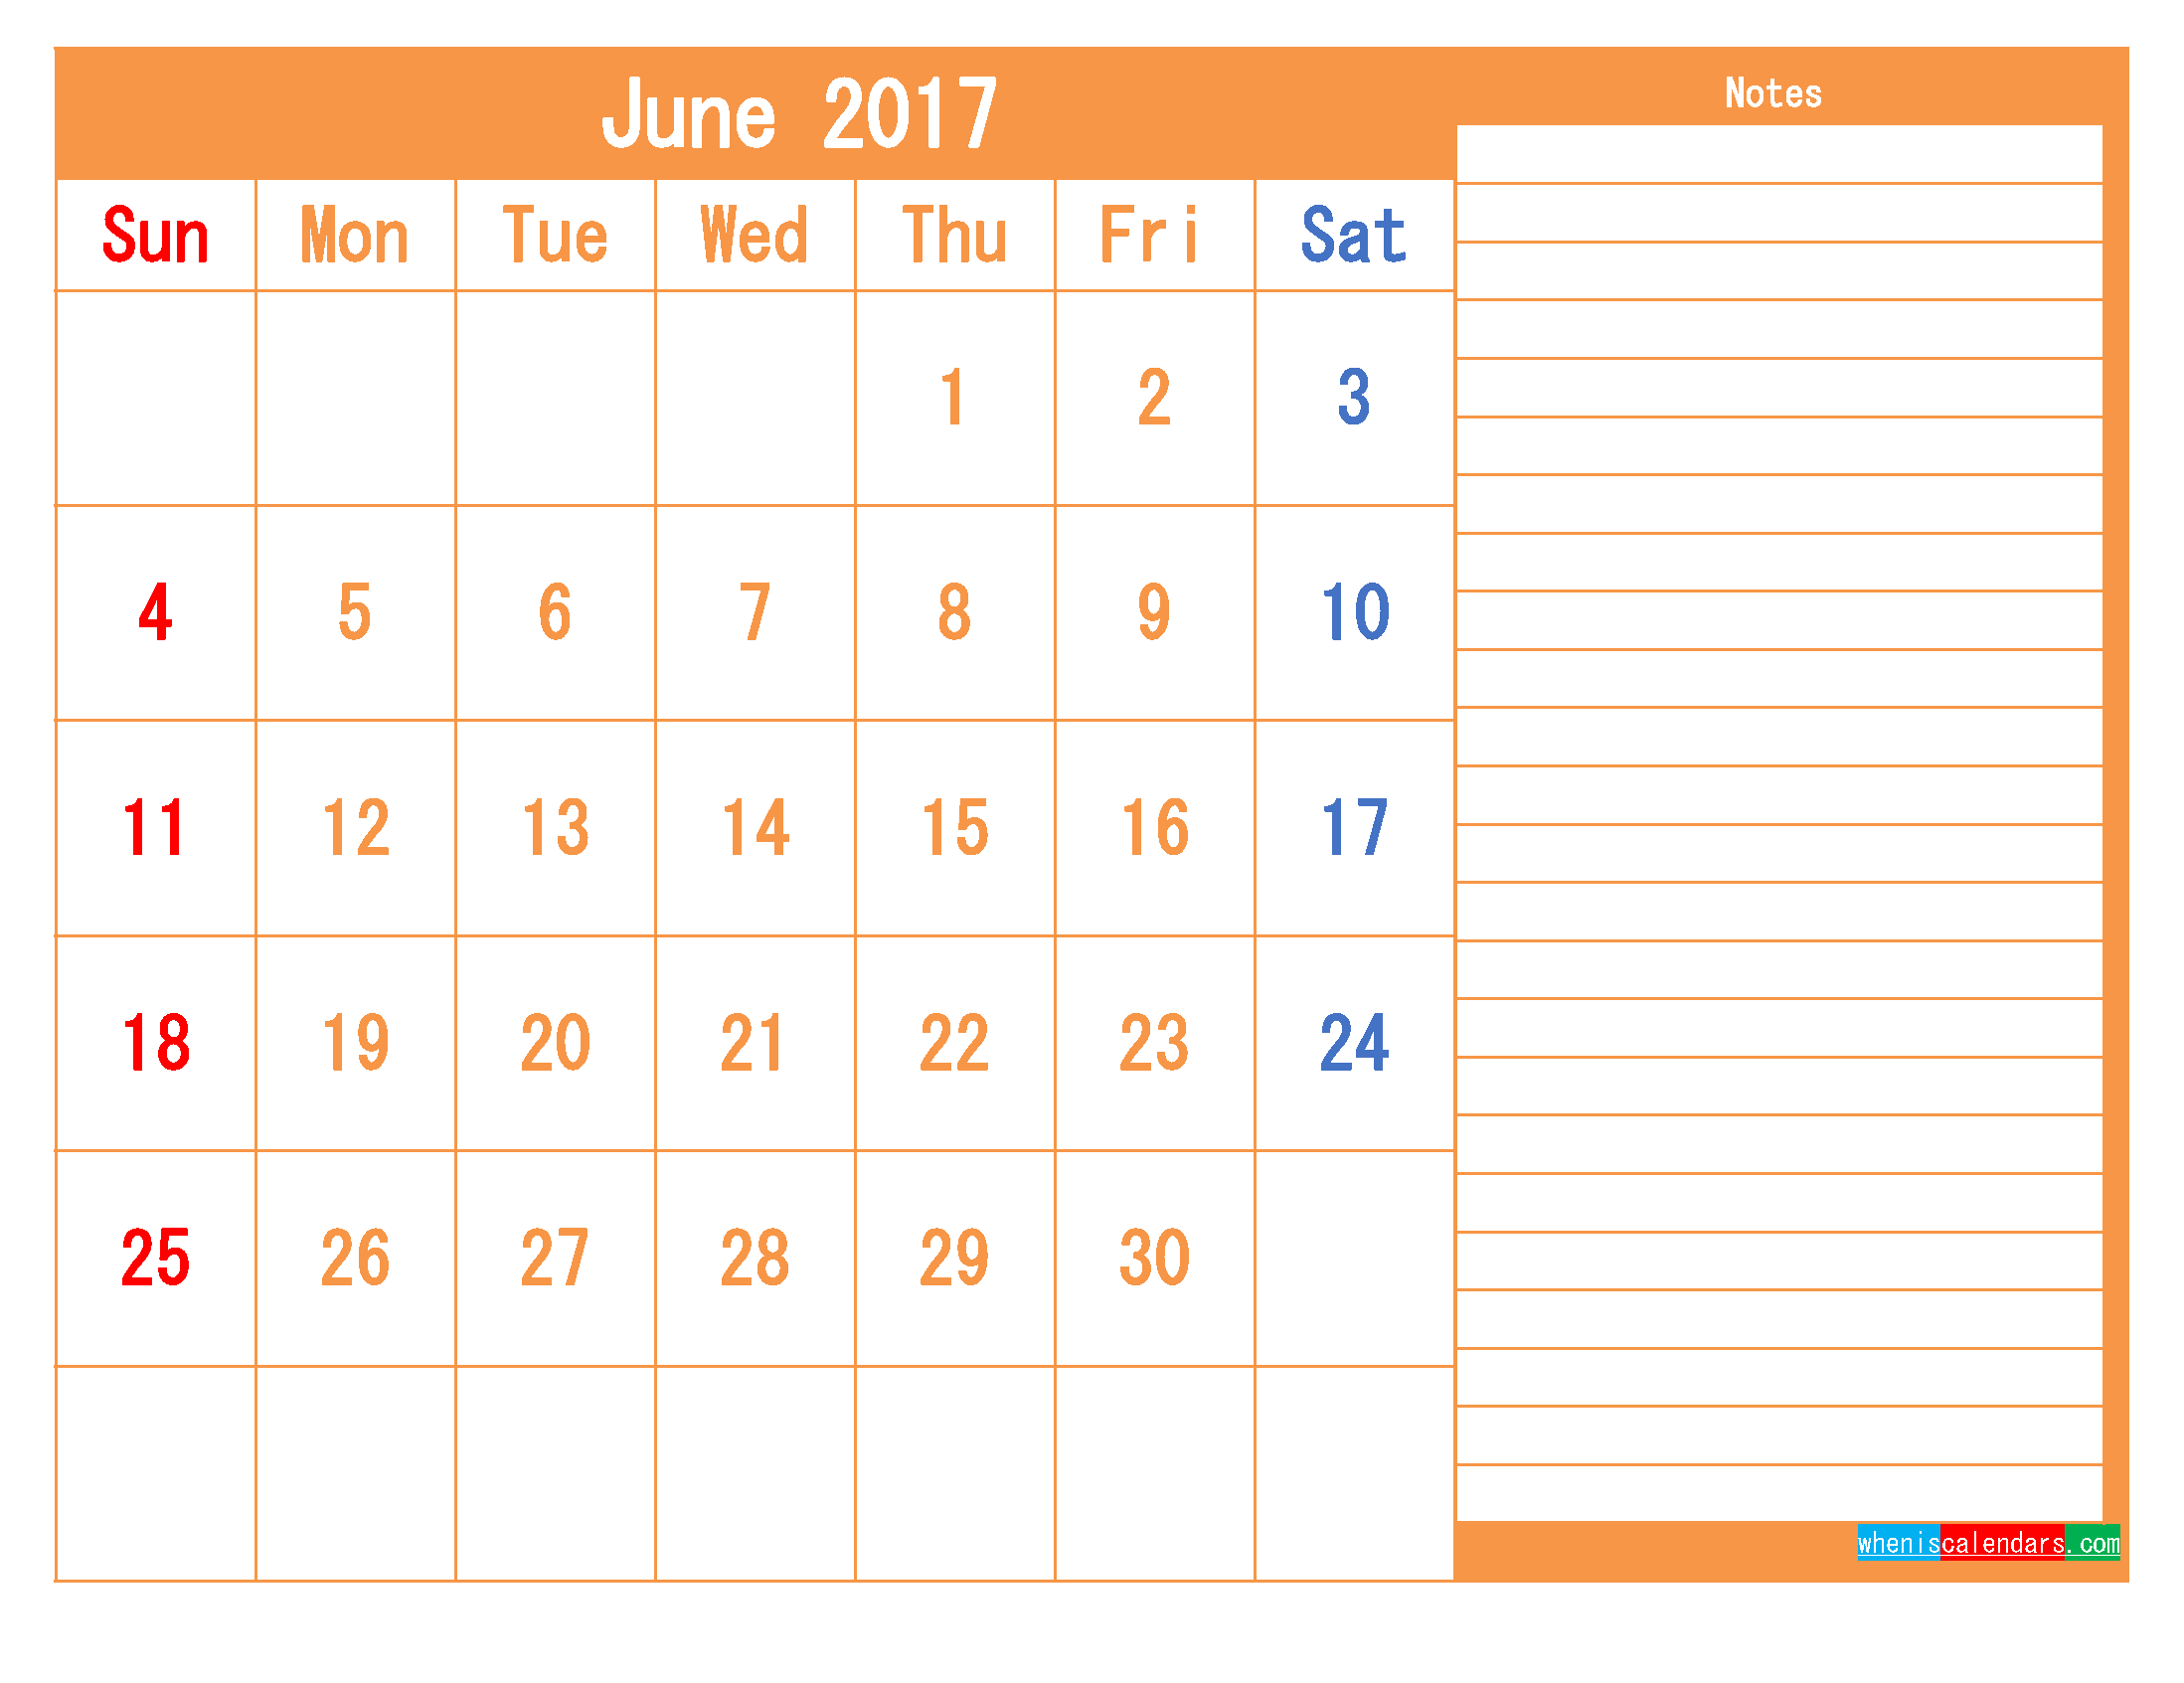 Free Printable Calendar 2017 June PDF and Image